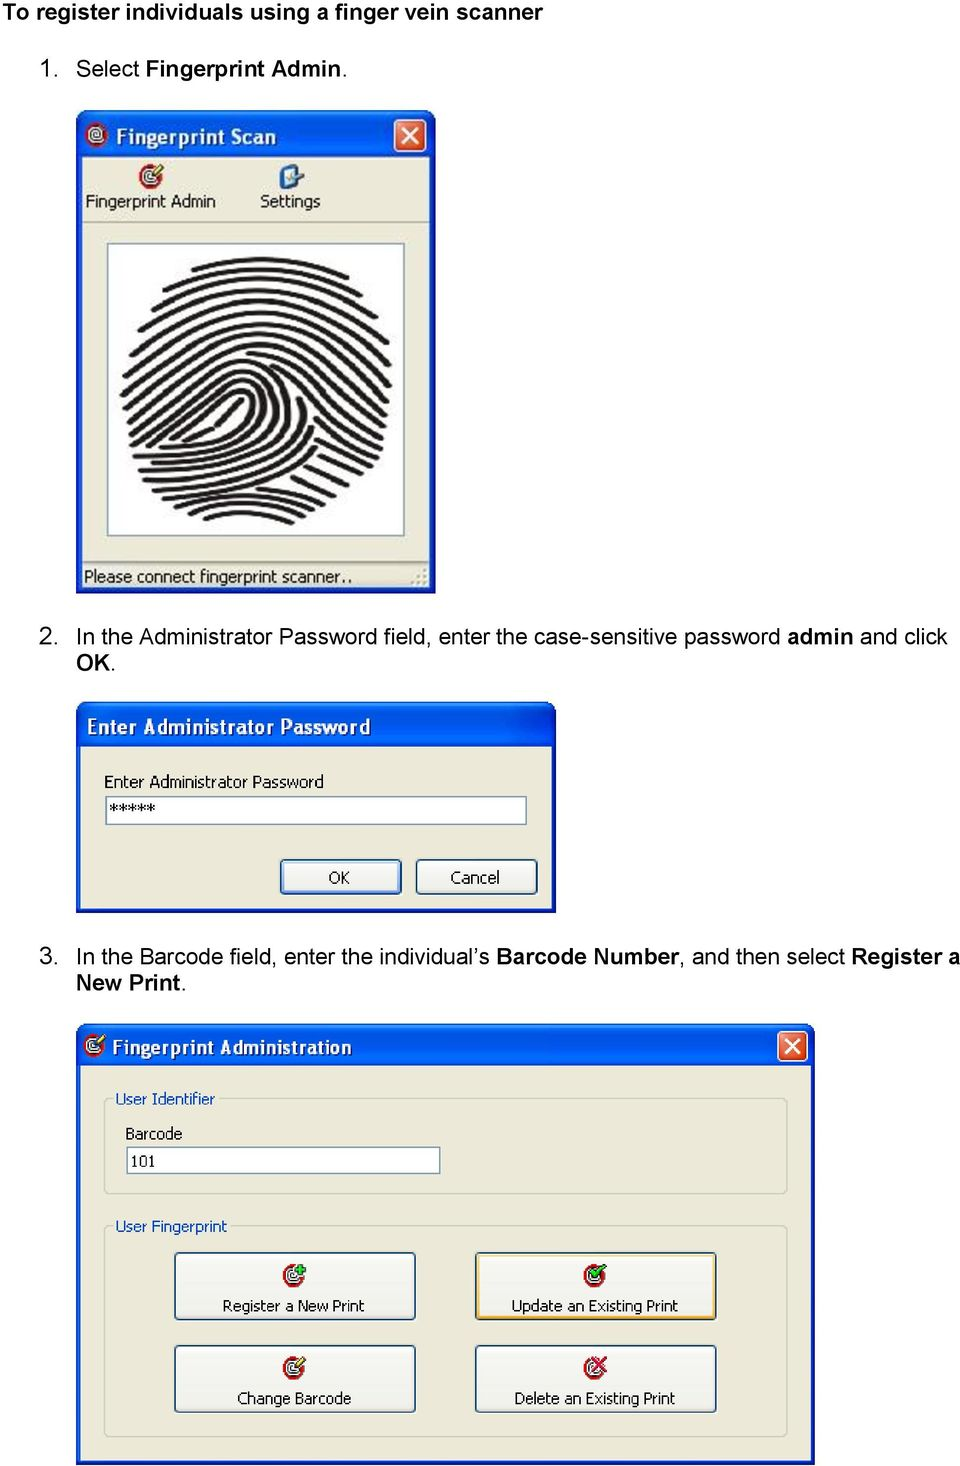 In the Administrator Password field, enter the case-sensitive